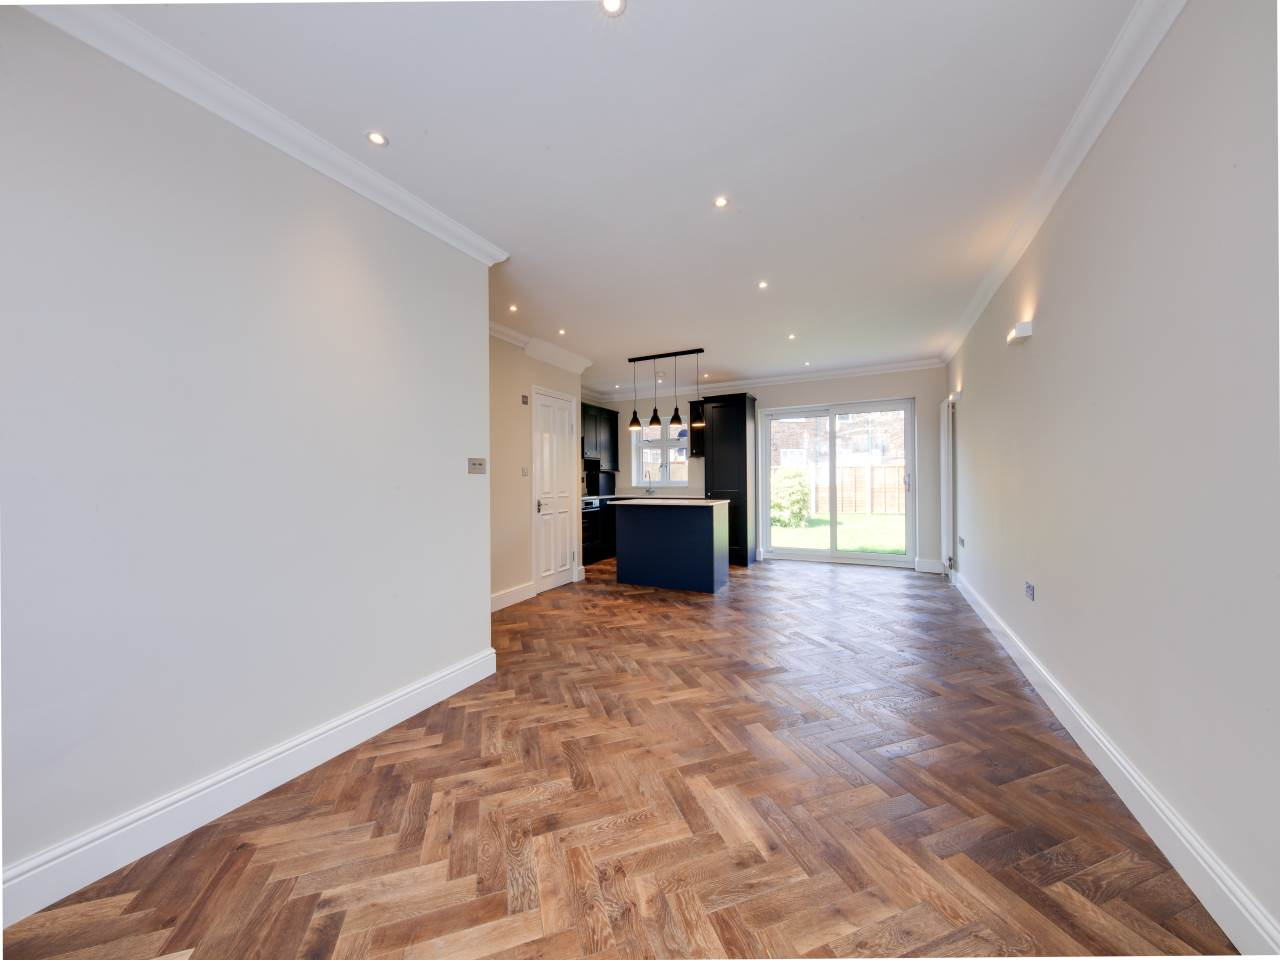 3 bed house for sale in Shernhall Street , Walthamstow  2